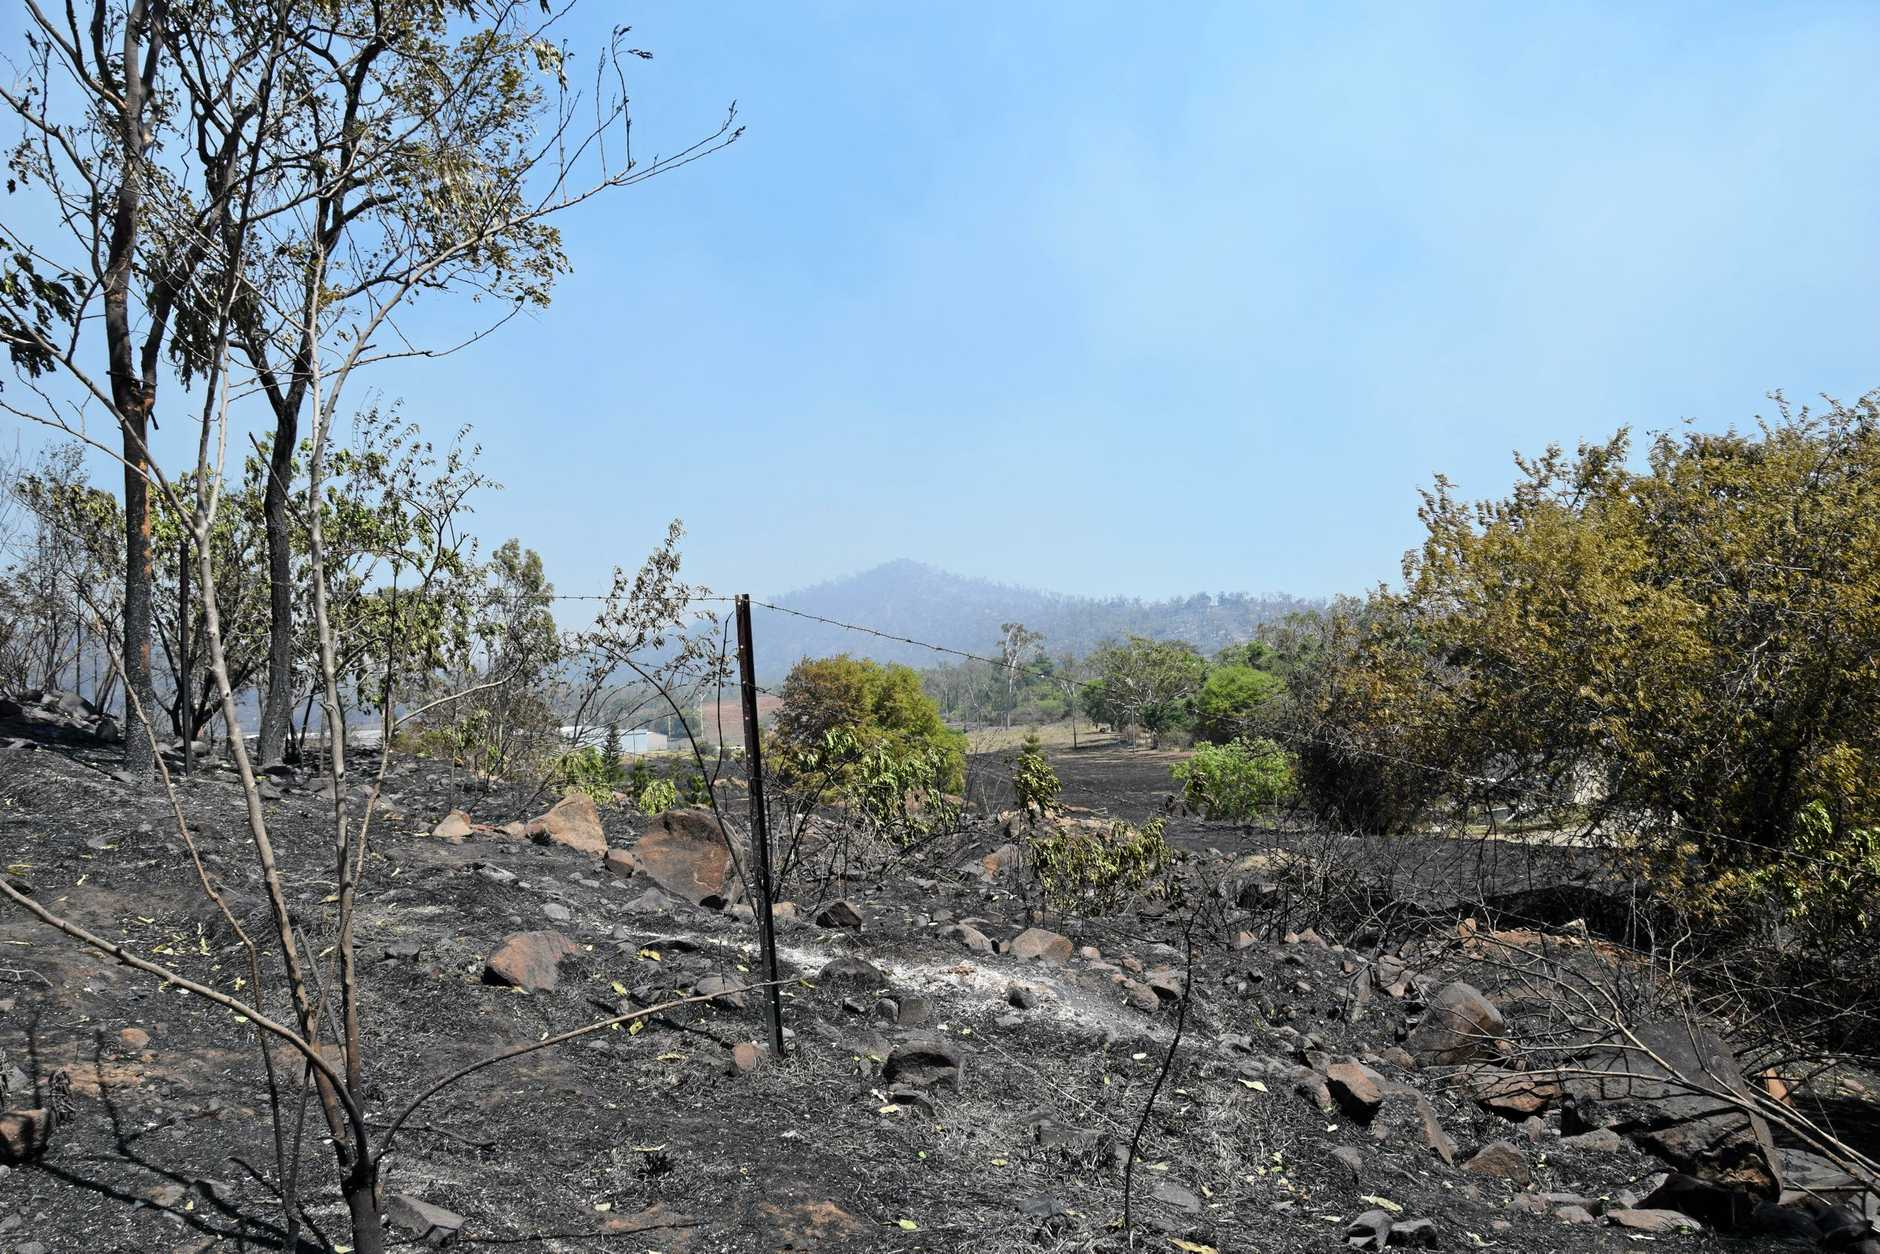 STANWELL FIRE: The fire that burned land between Stanwell and Kabra sparked a massive evacuation for Kabra and Gracemere residents on Wednesday.